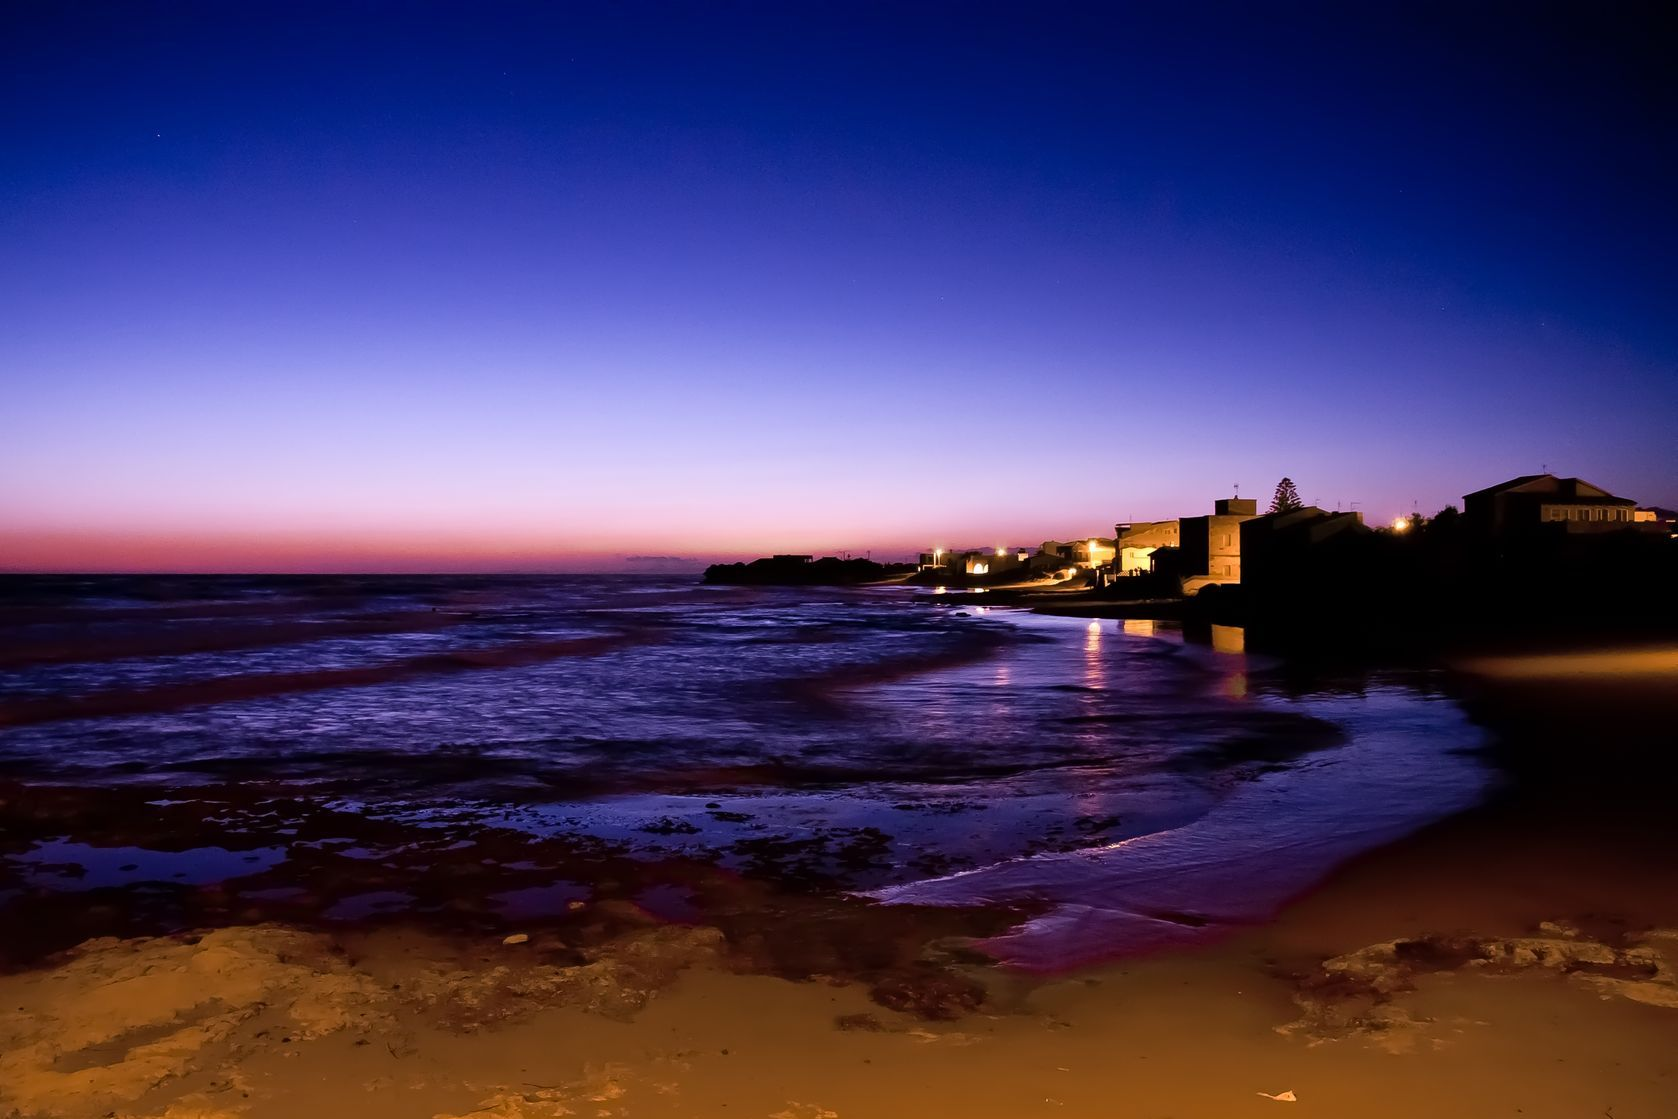 Tramonto a Puntasecca! Sunset at Puntasecca! #sicilia #sicily #italia #italy #sunset #landscapes #travel #holiday